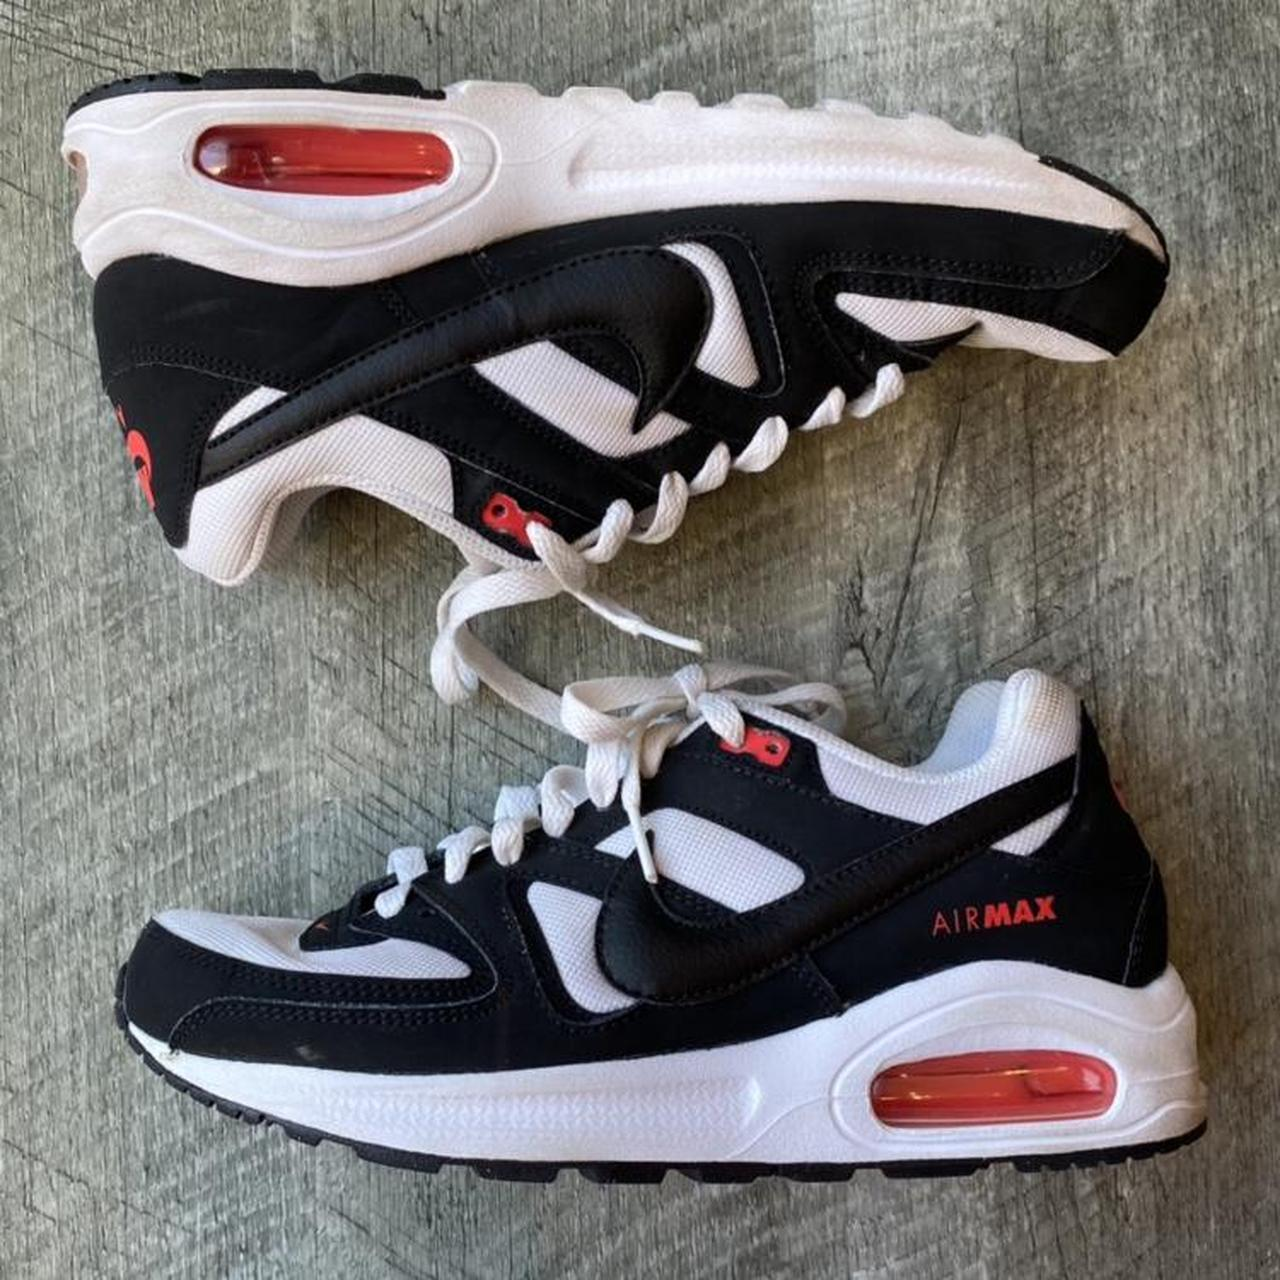 Product Image 1 - Nike air max sneakers white